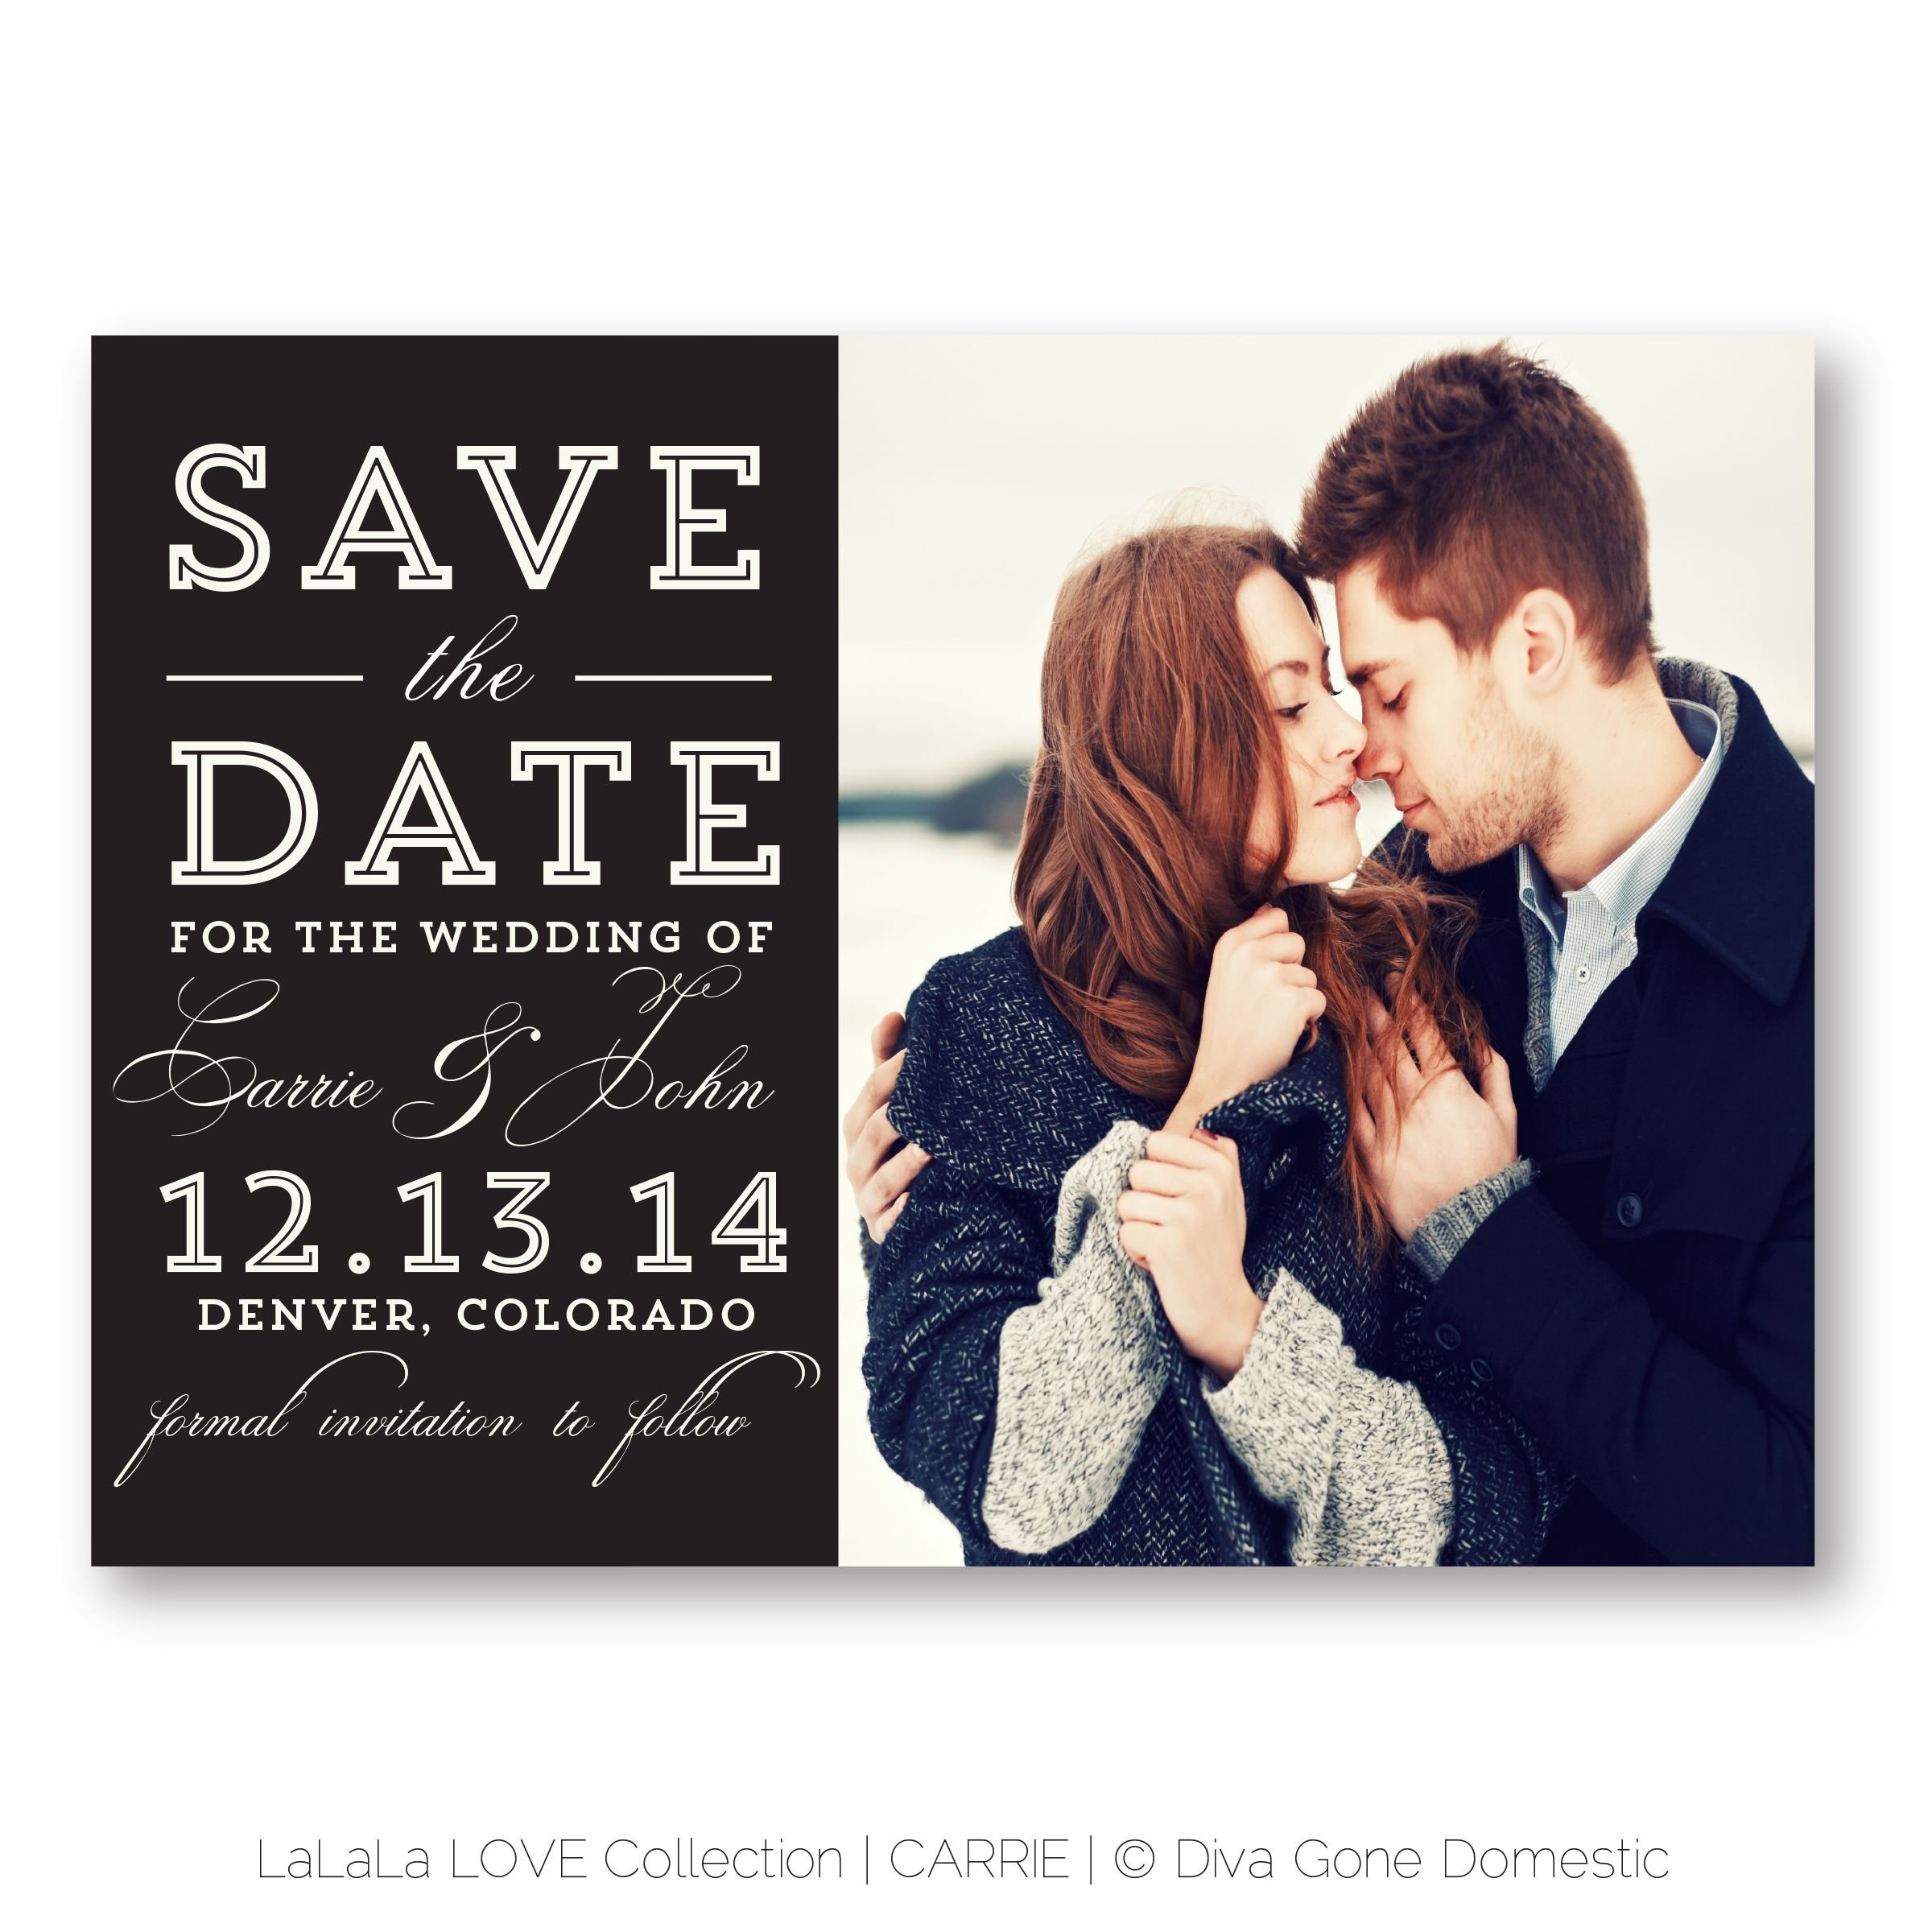 10 Most Popular Wedding Save The Dates Ideas unique save the date cards postcards and ideasdgd invitations 2020